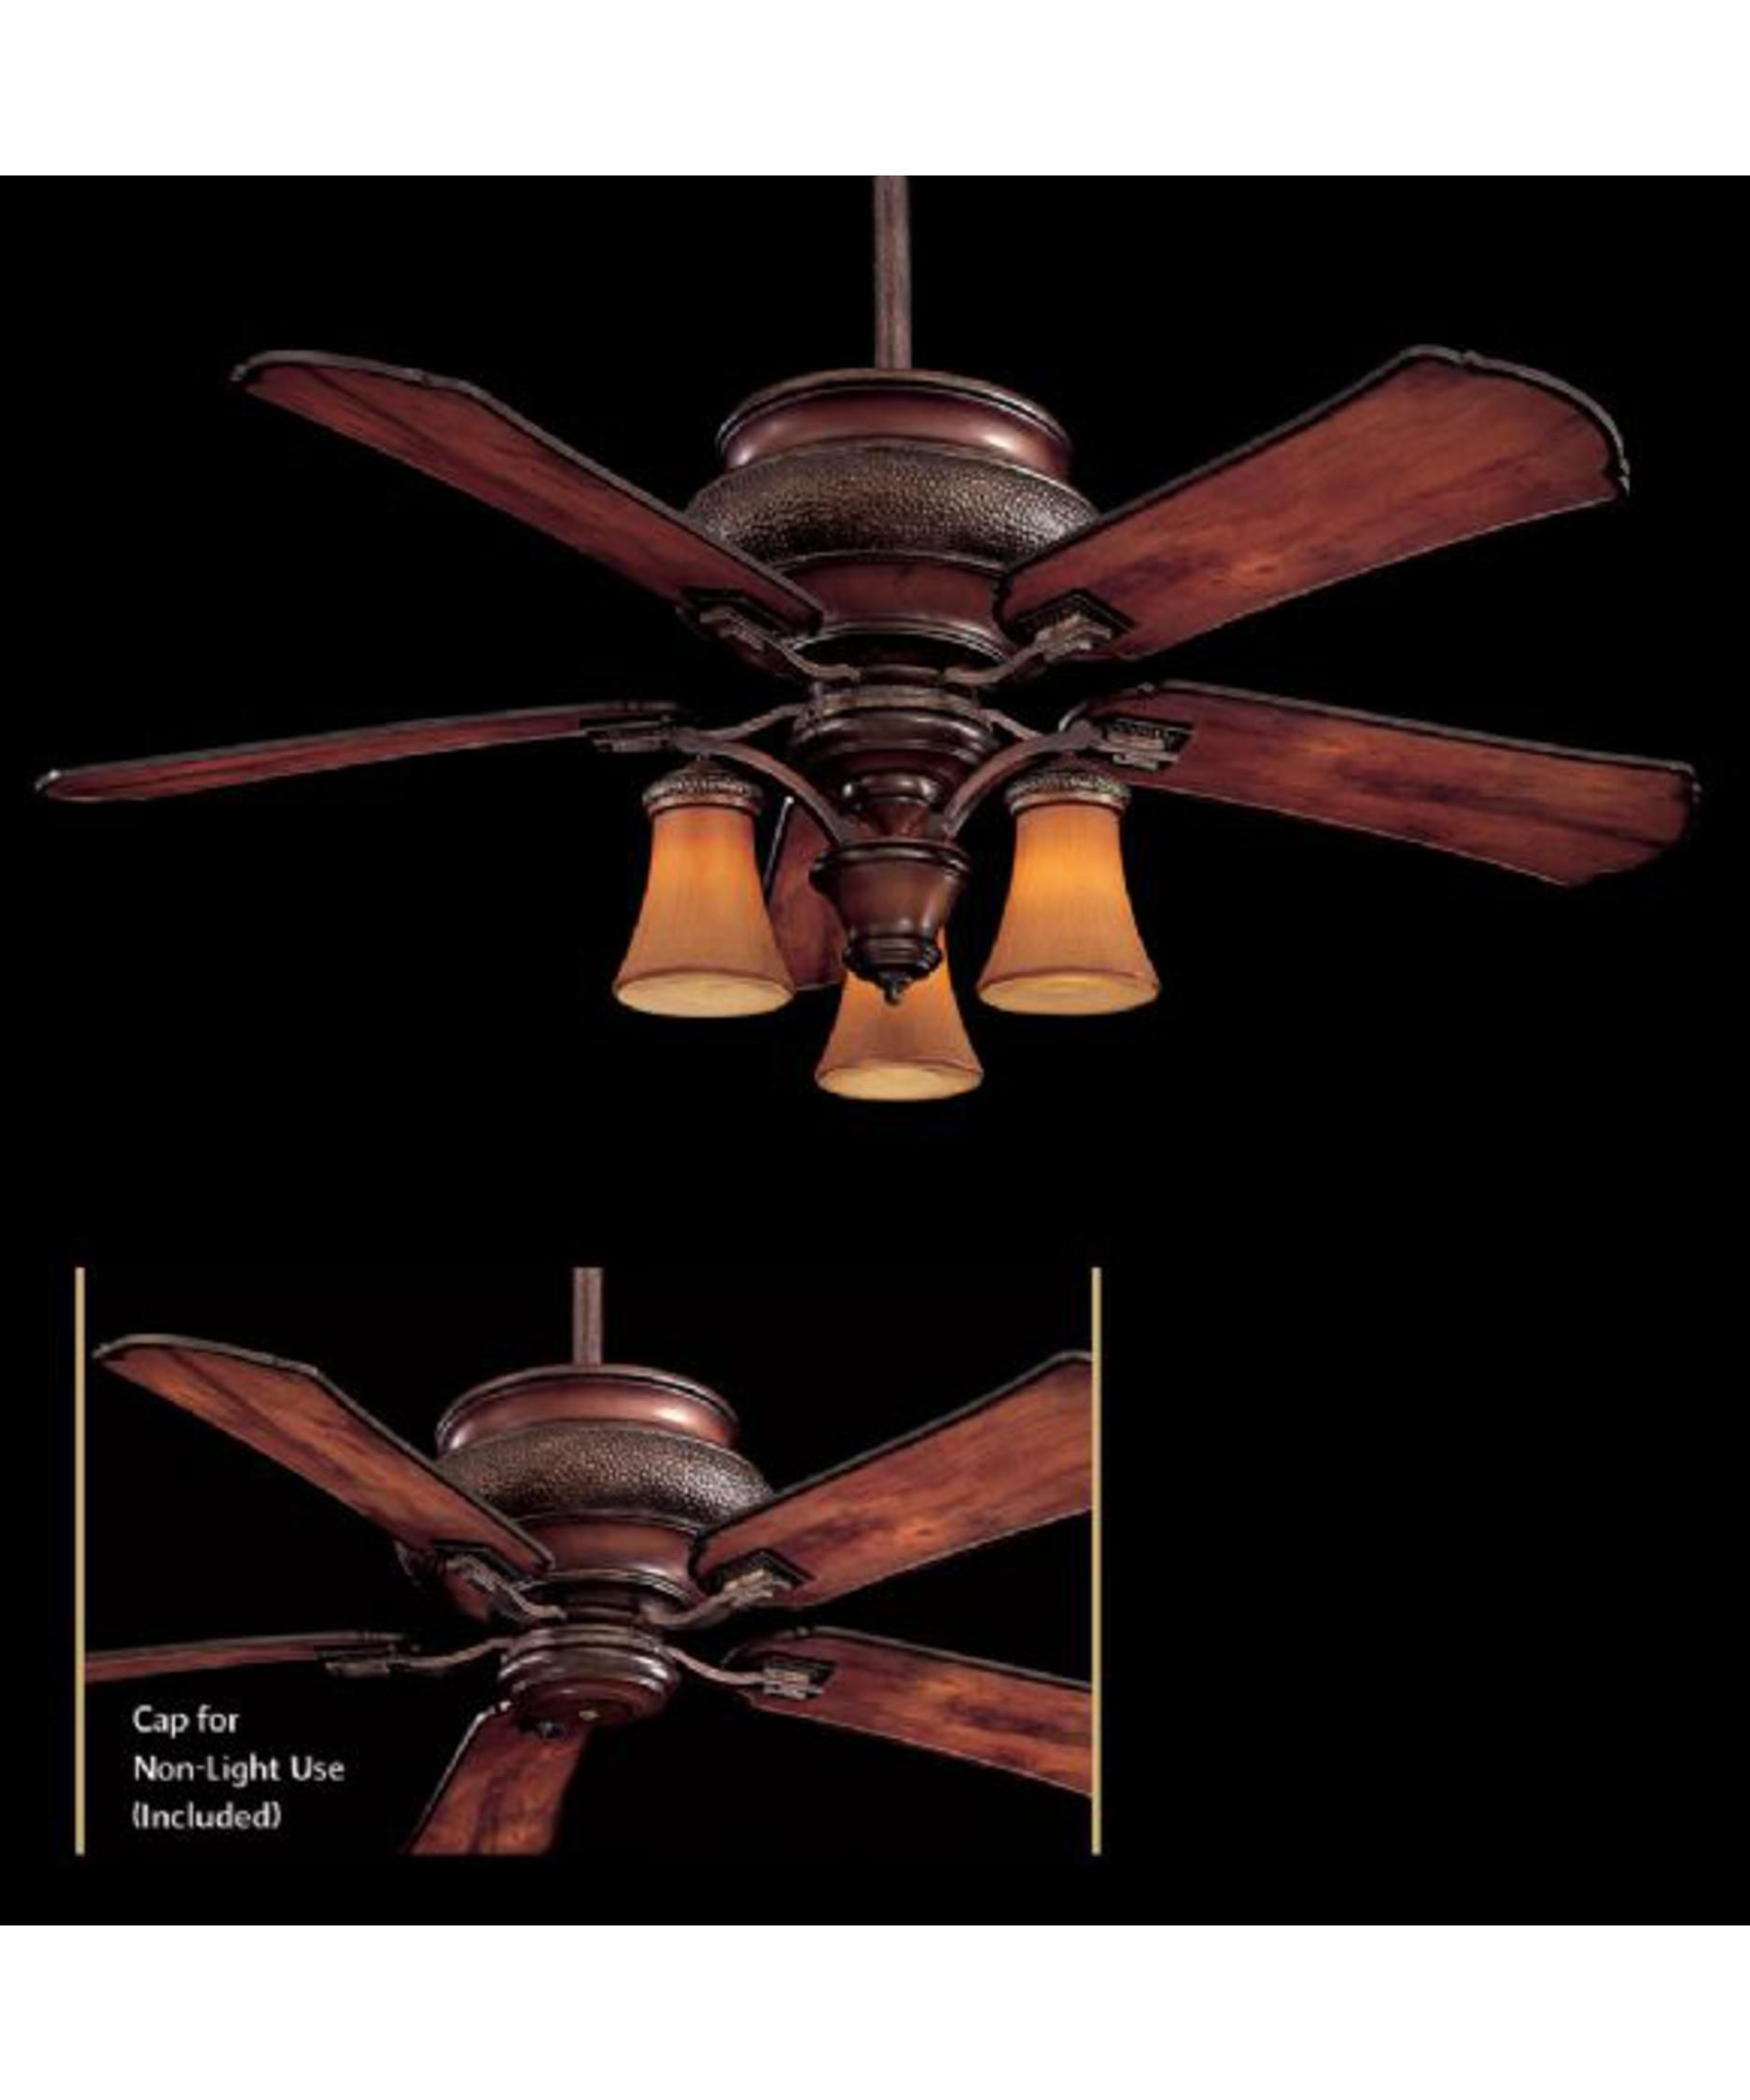 Minka Aire F840 Craftsman 52 Inch Ceiling Fan With Light Kit Exterior Ceiling Fans Rustic Light Fixtures Exterior Light Fixtures